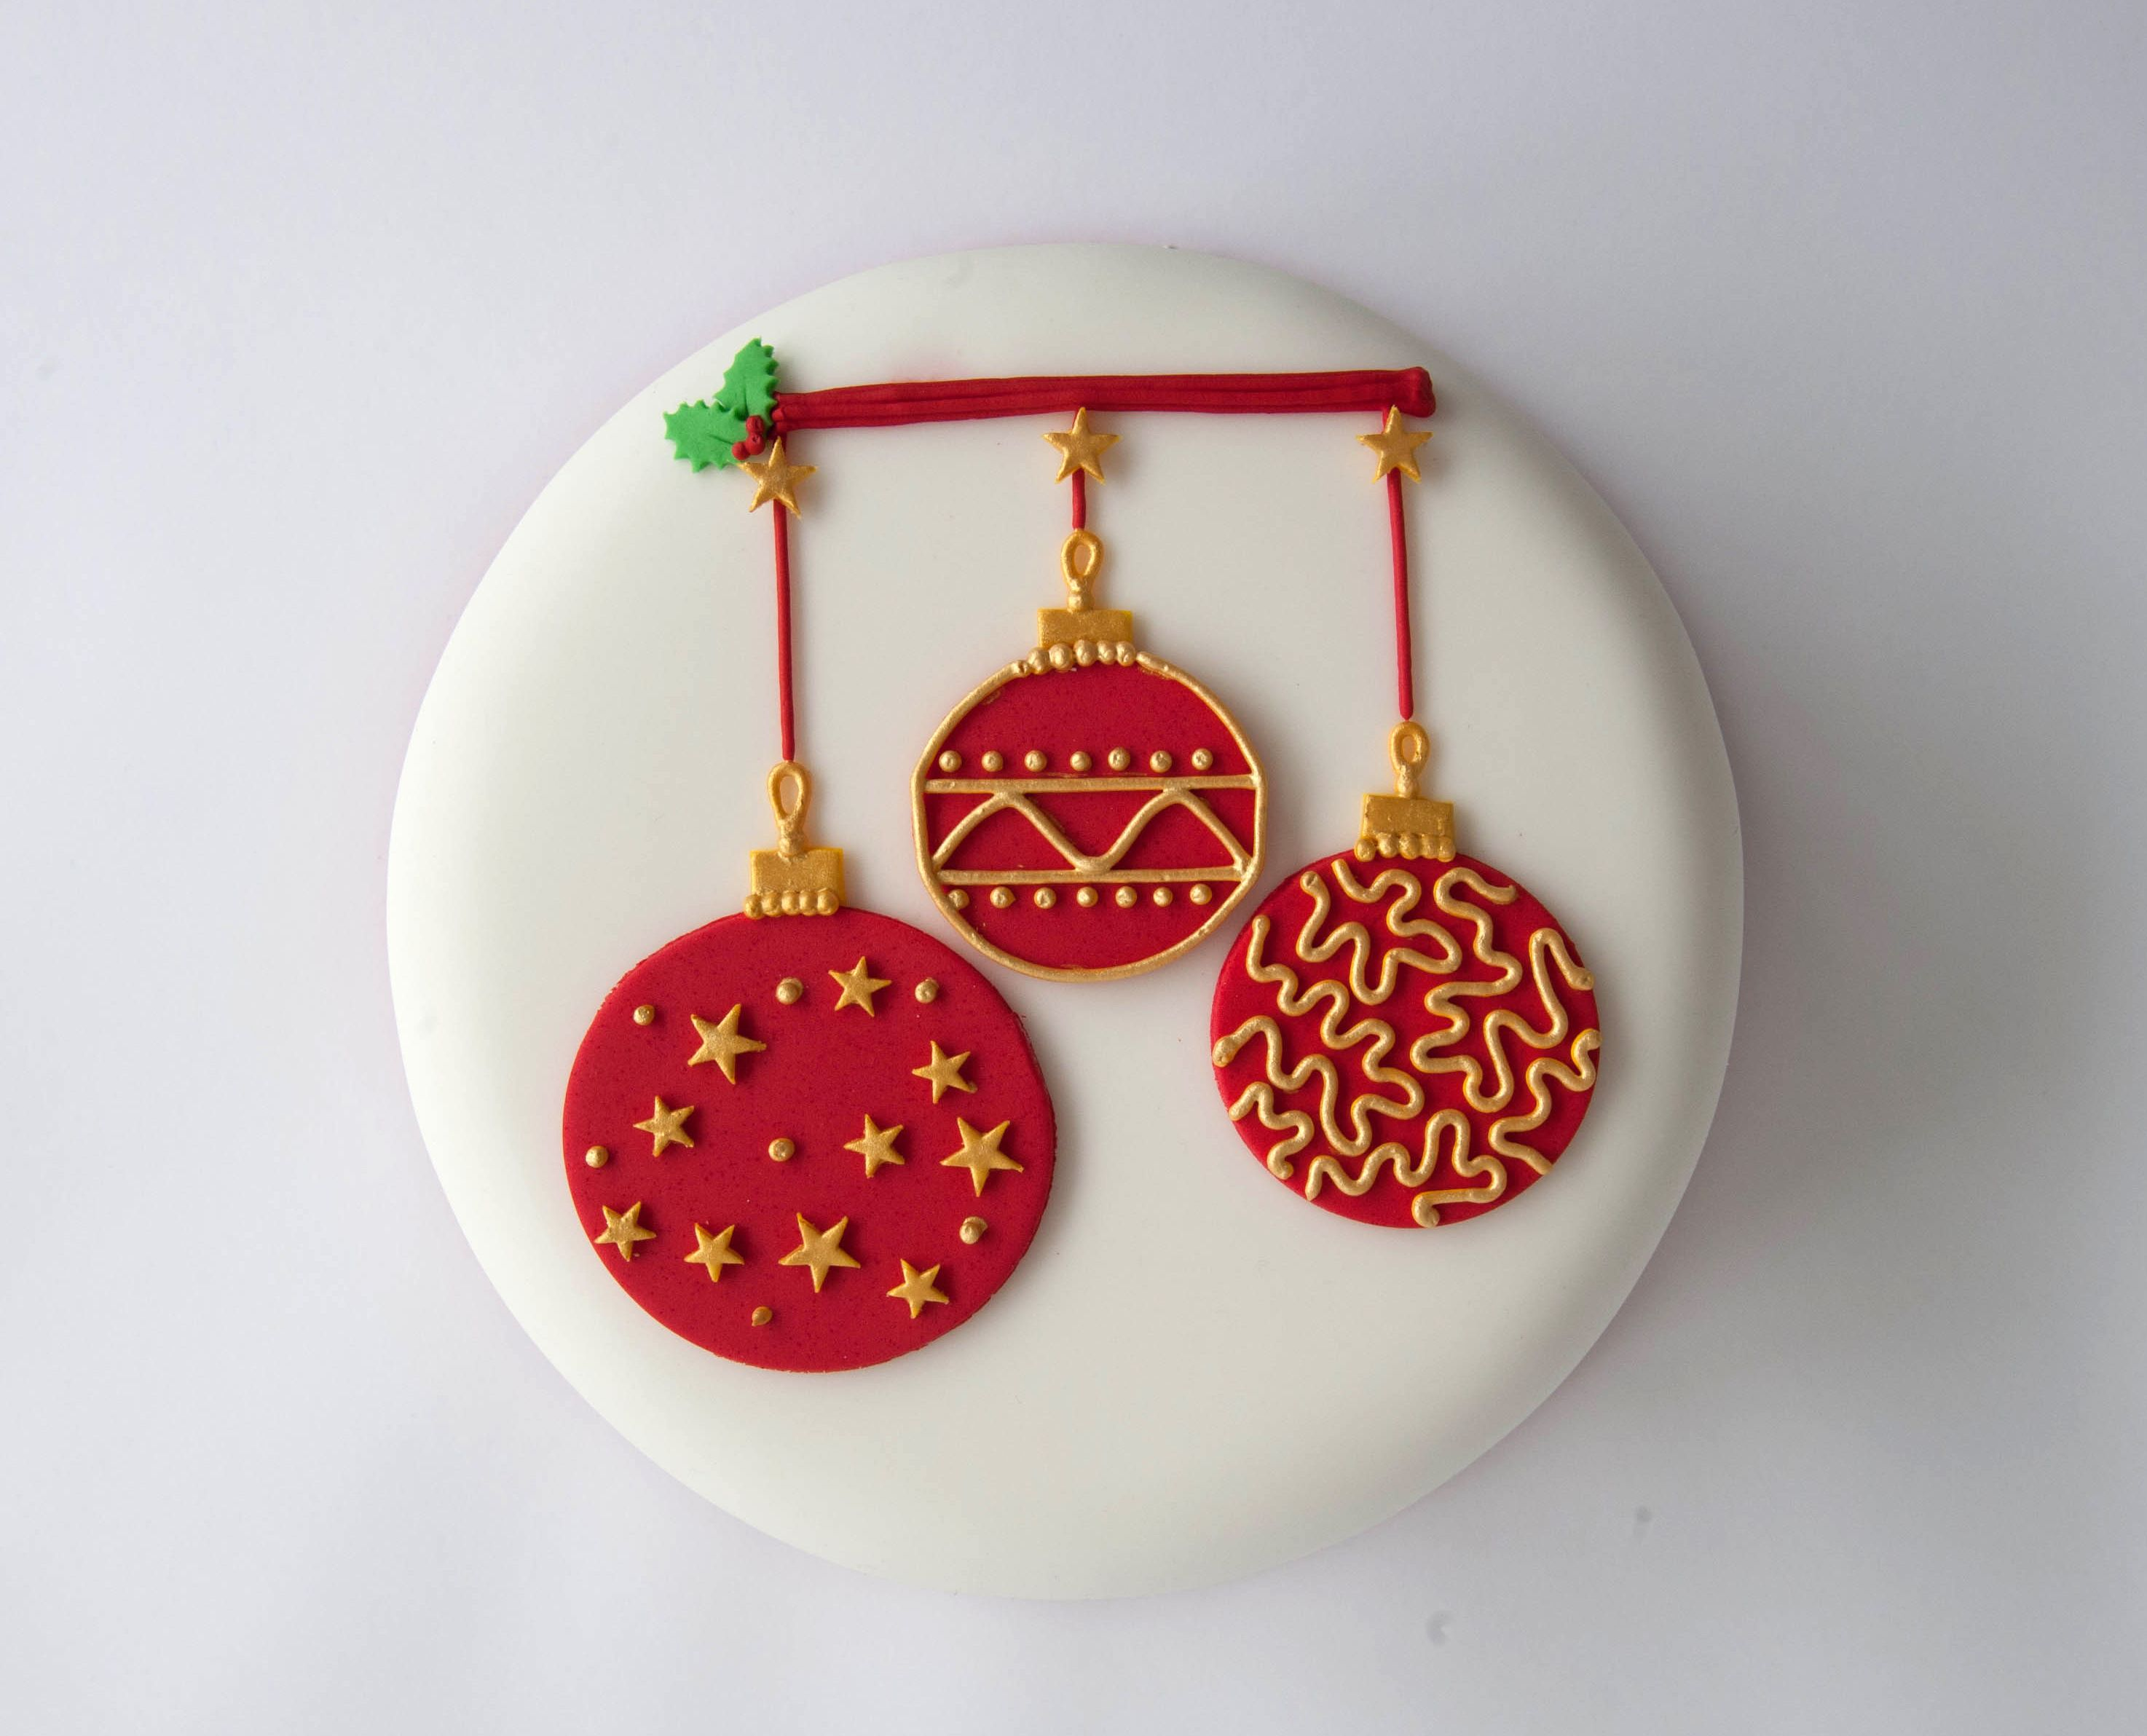 Easy Cake Decorating For Christmas : Day 1   Christmas Cake Decorating Decorating, Tutorials ...